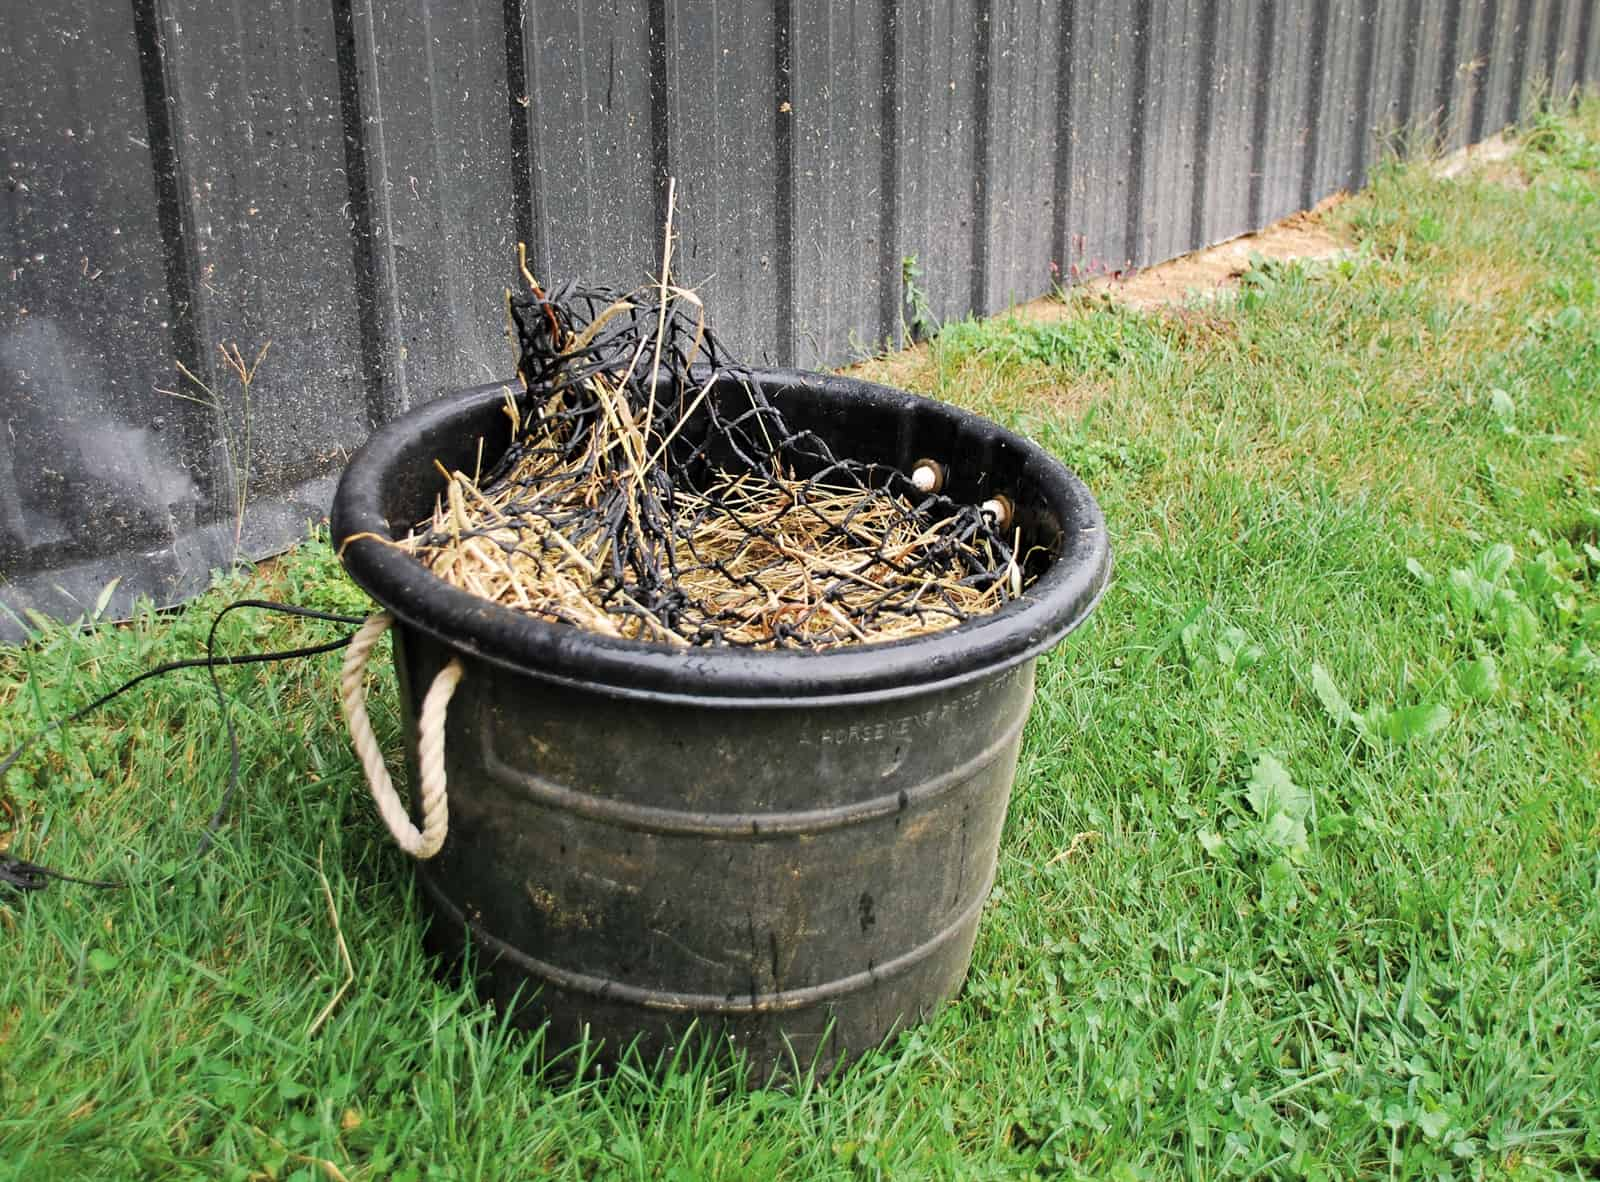 Soak hay to reduce its carbohydrate content if your horse has EMS or PSSM.